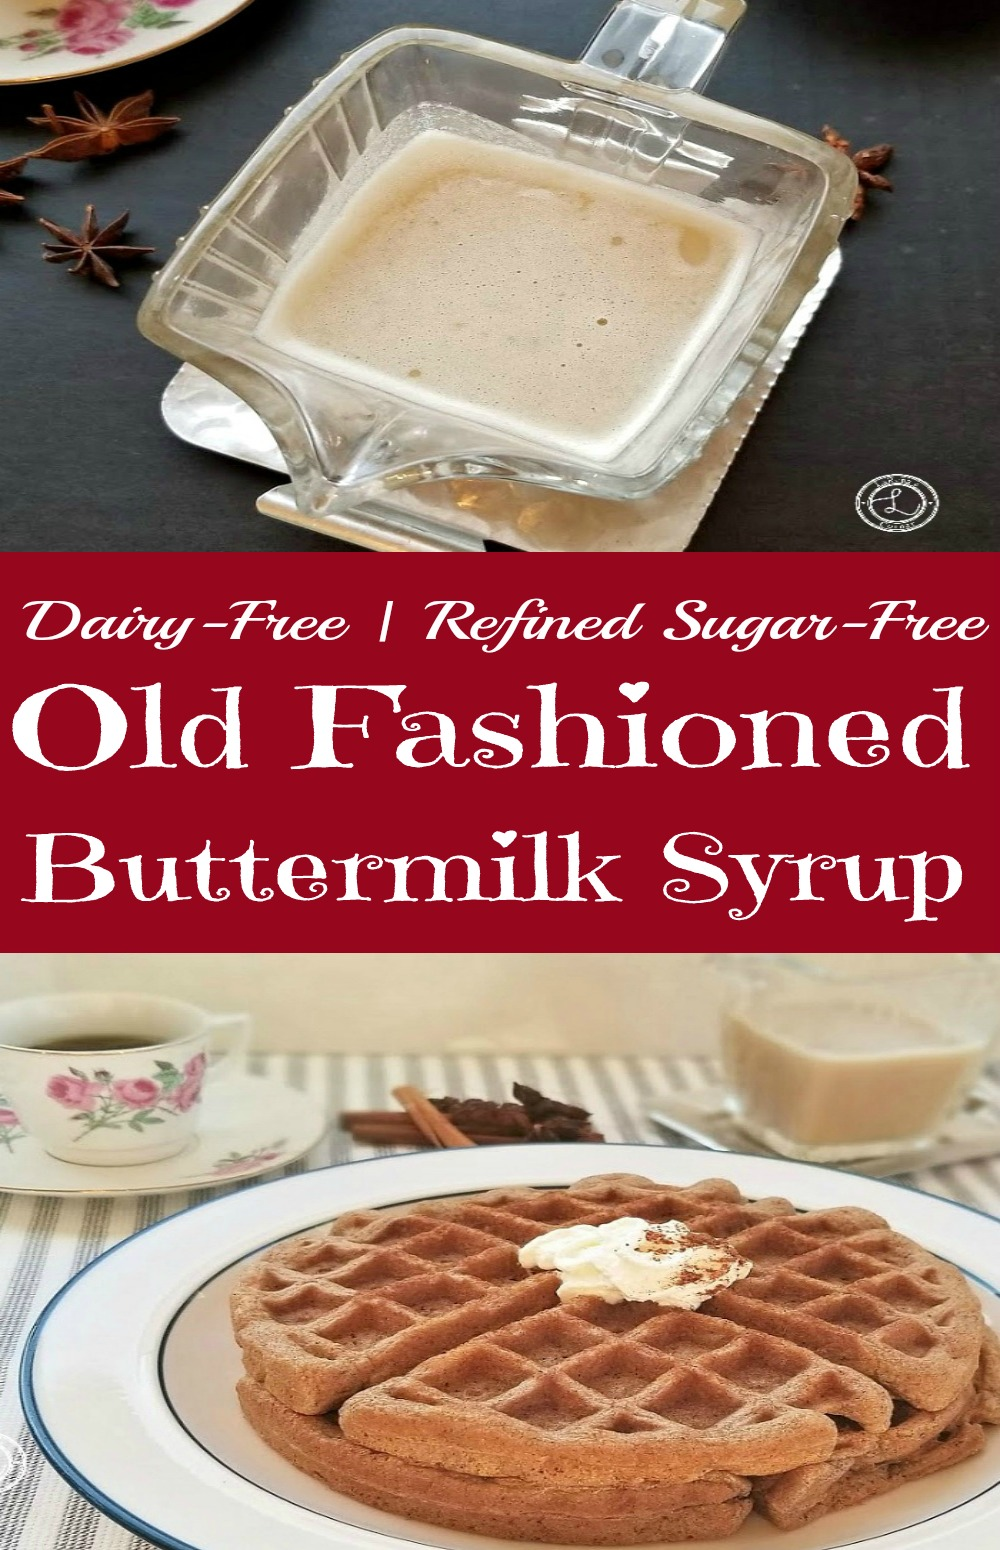 Gingerbread Waffles with Old Fashioned Buttermilk Syrup and Buttermilk Syrup in a pouring dish